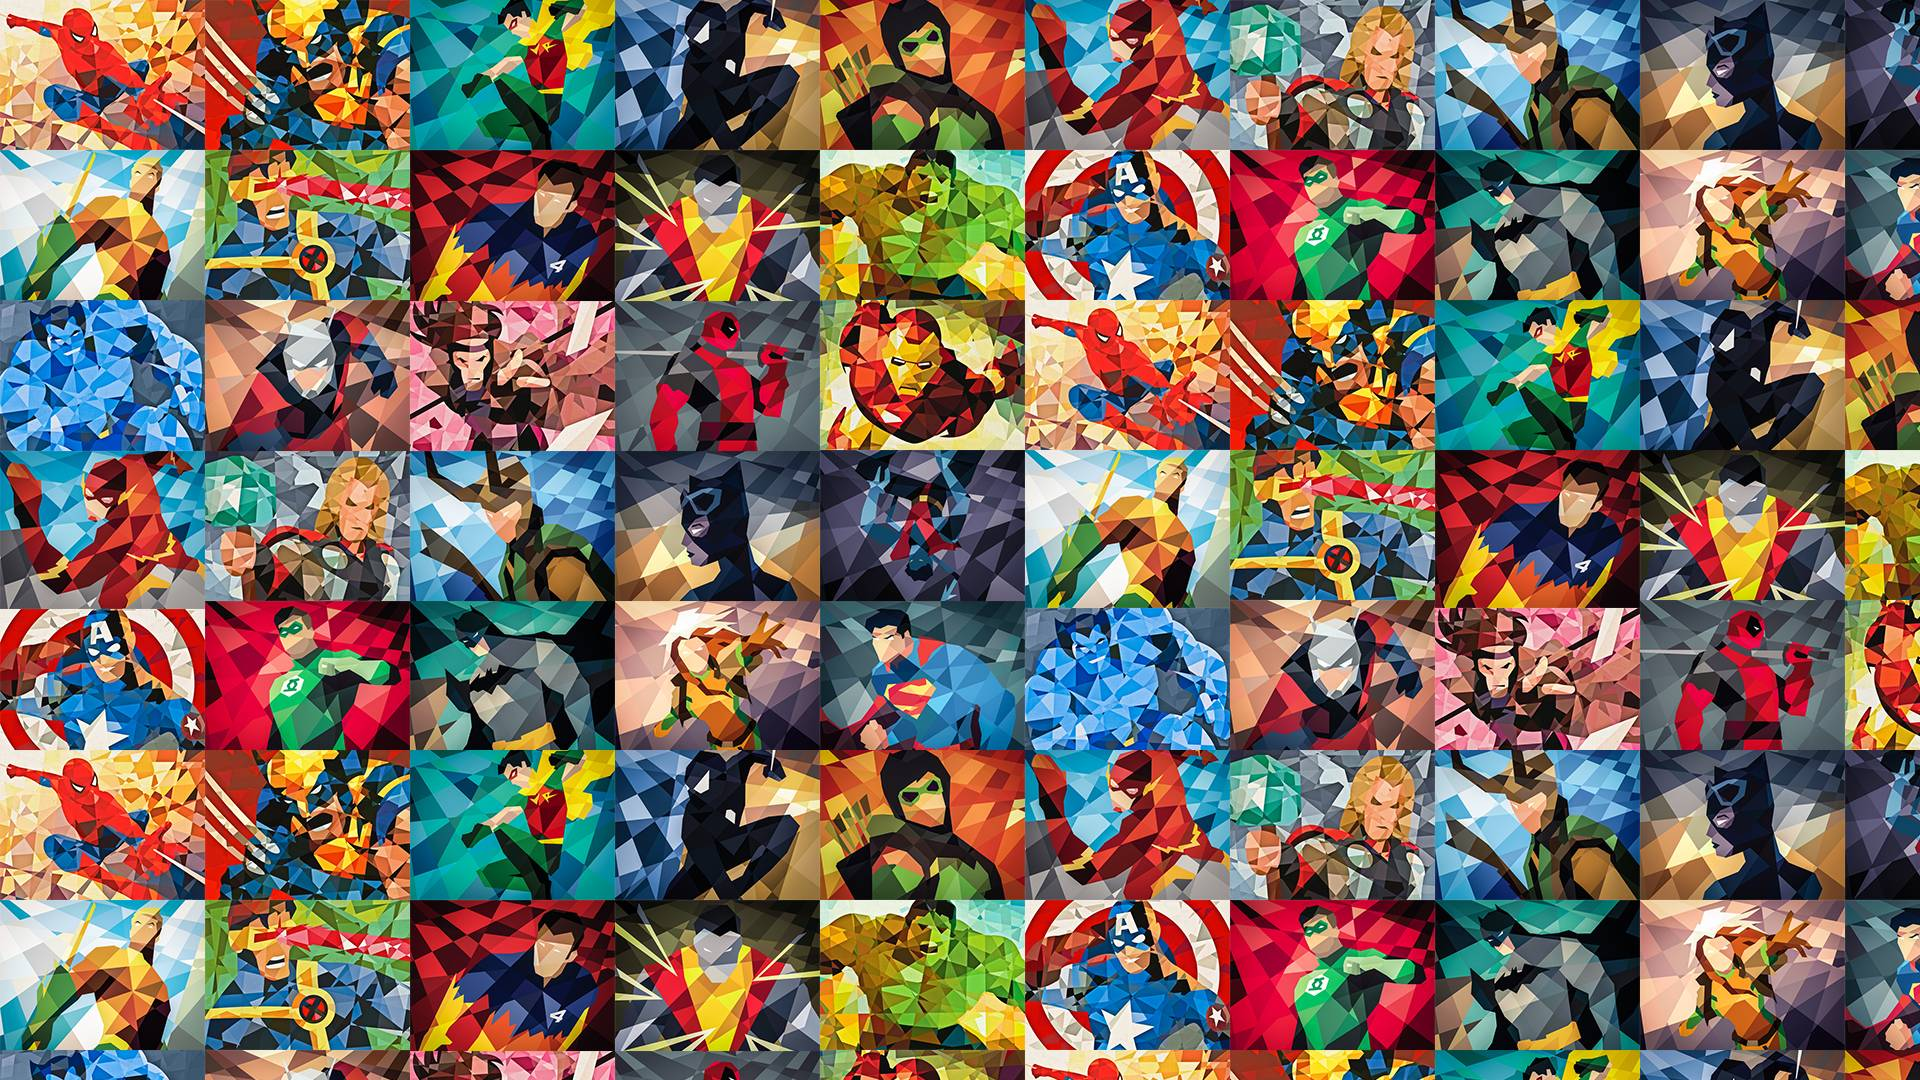 similar image search for post Superhero Collage [1920x1080]   Reverse 1920x1080